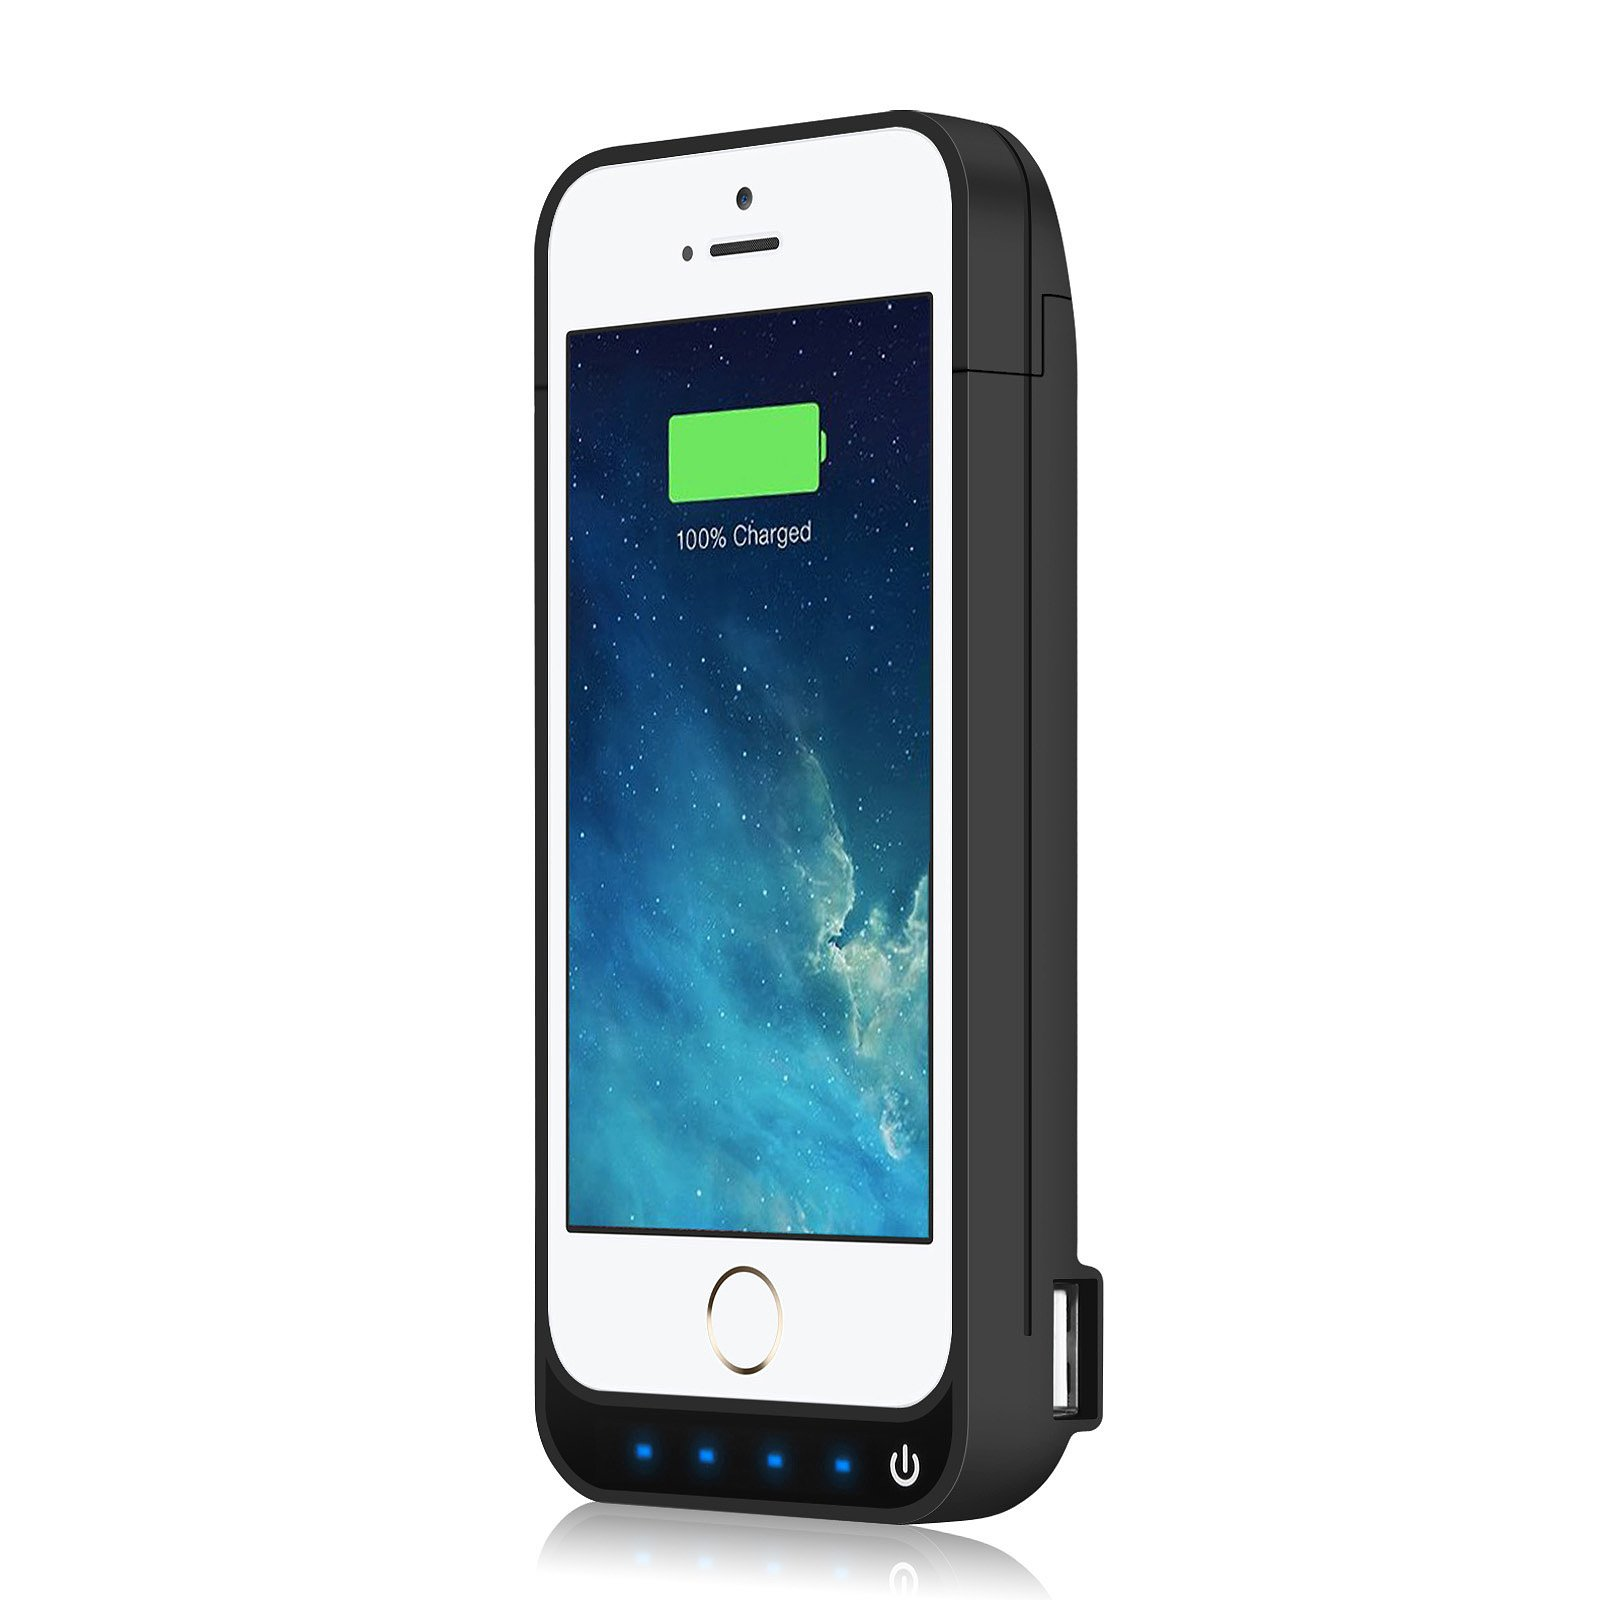 iPhone 5/5S/5C/SE Battery Case iPosible 4500mAh External Rechargeable Charger Case for iPhone 5/5S/5C/SE Charging Case Power Bank Battery Pack [24 Month Warranty] by iPosible (Image #2)